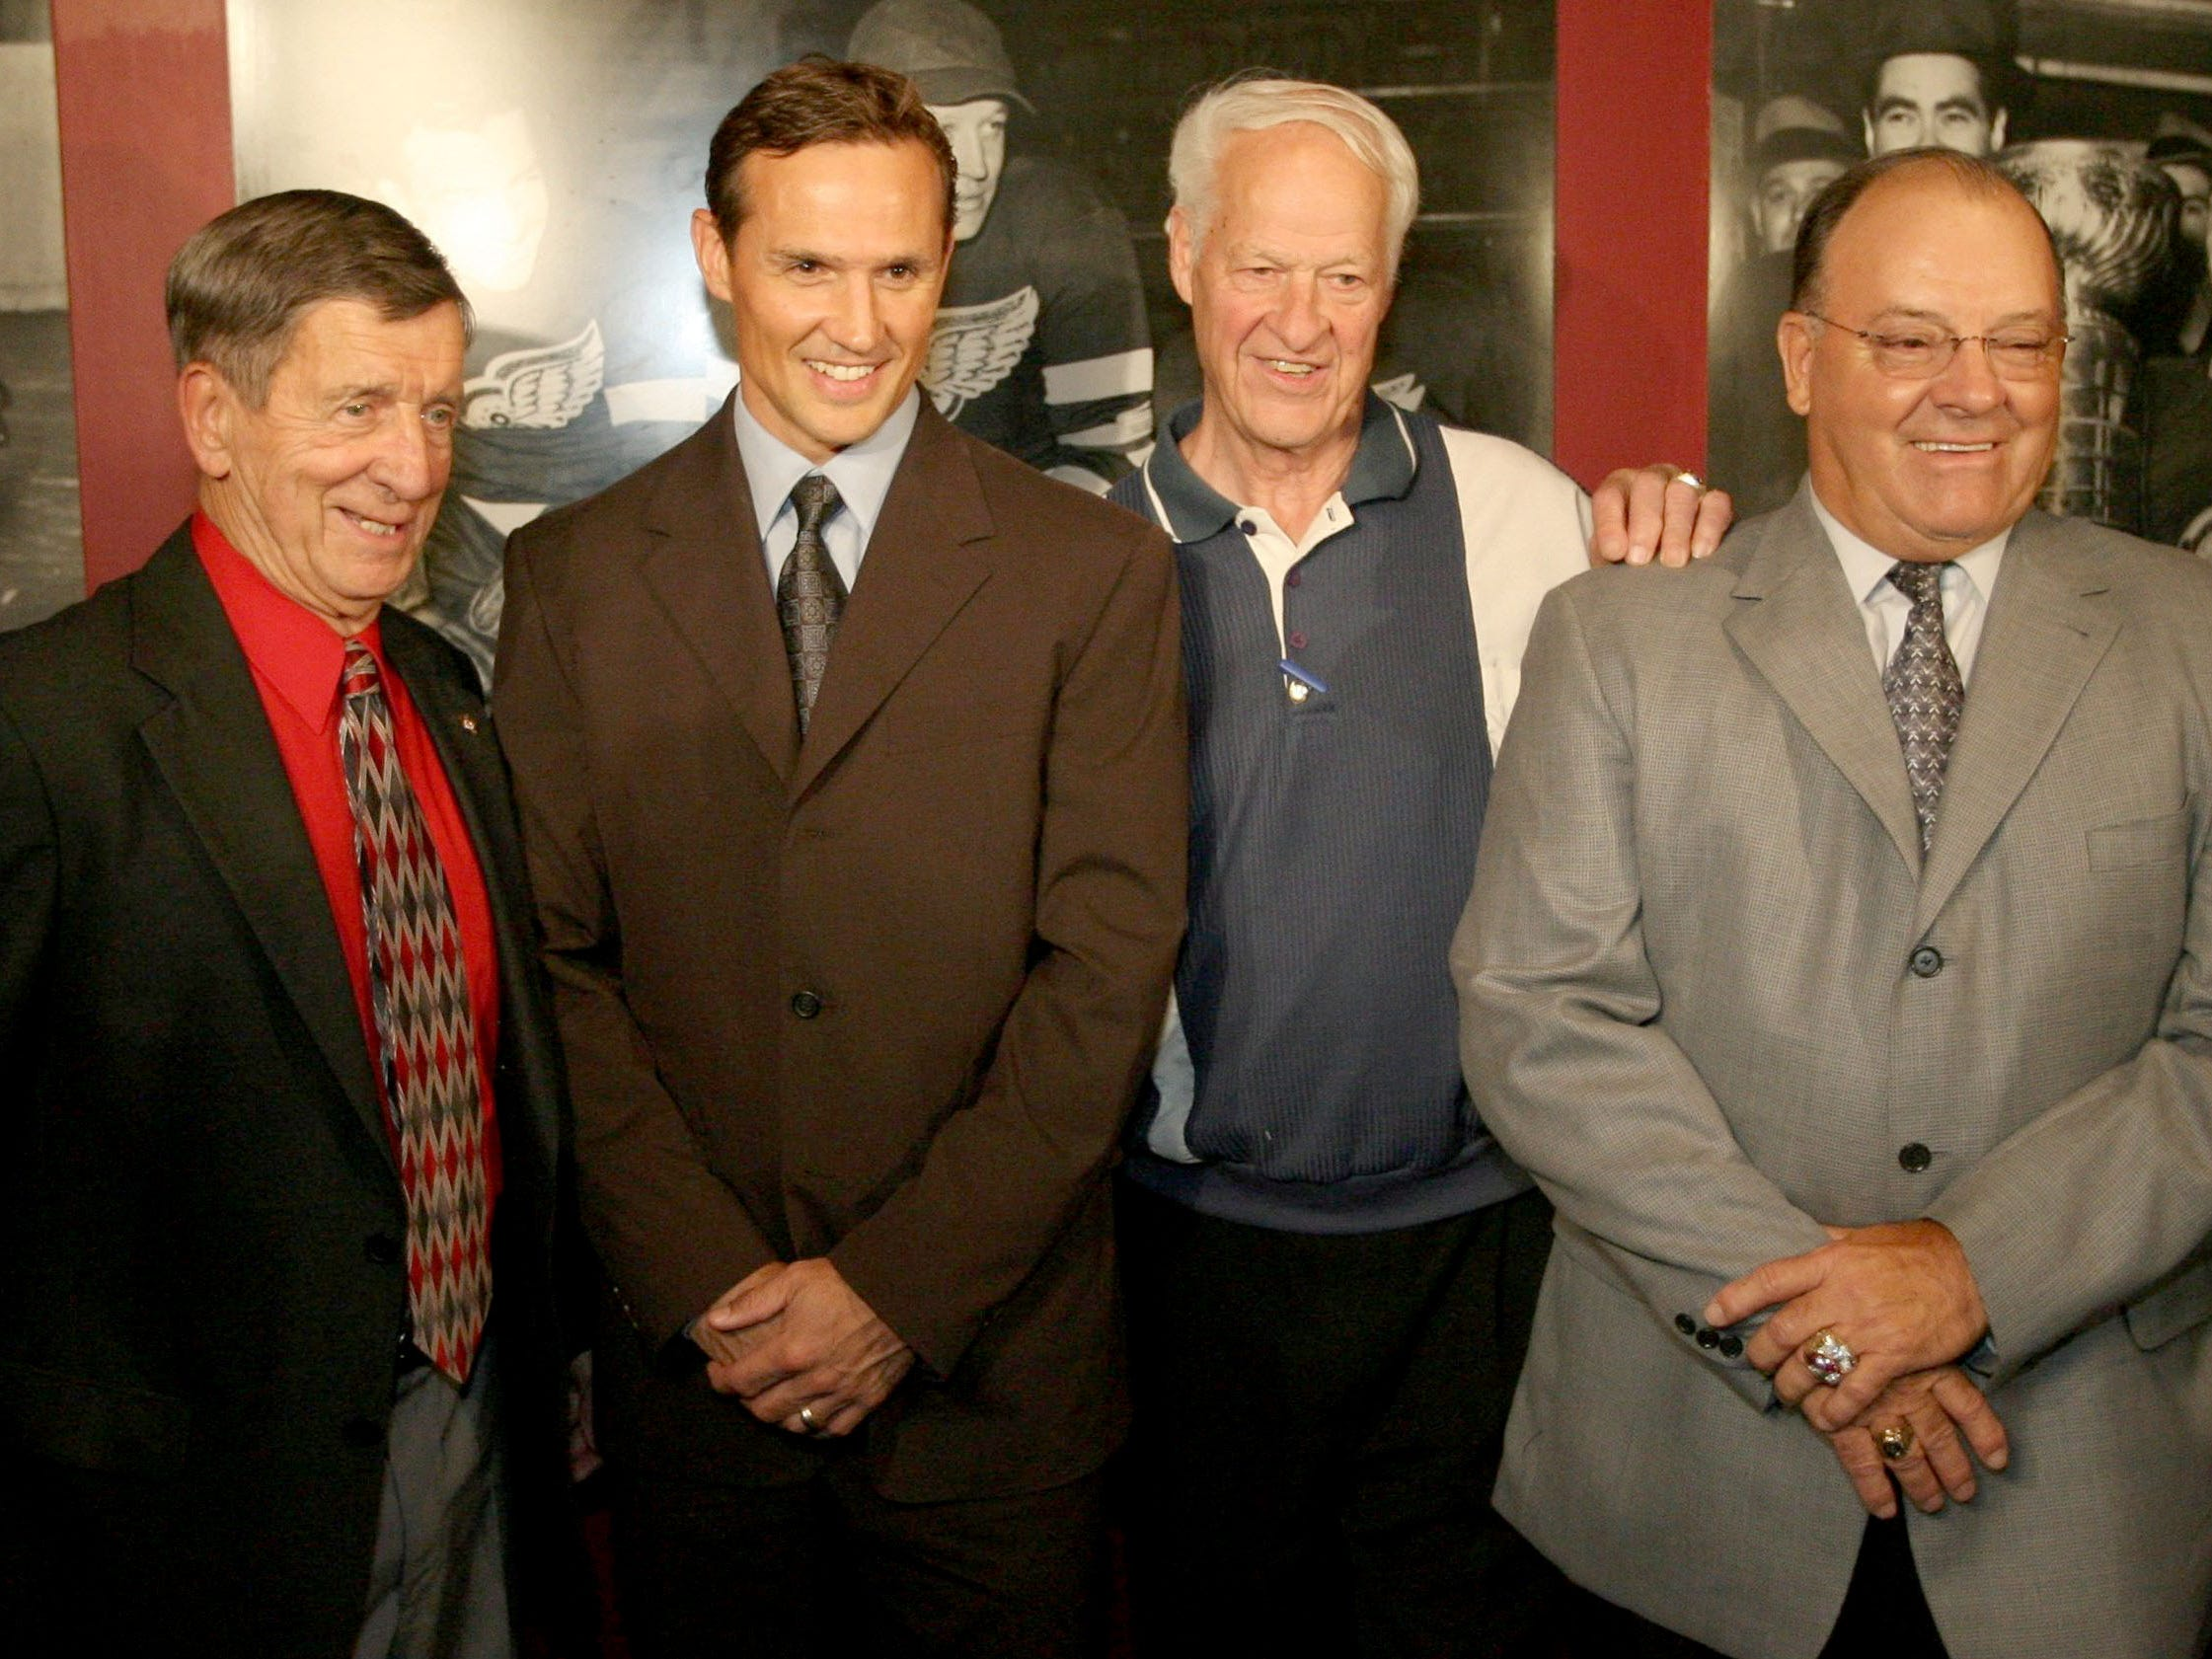 Red Wings Steve Yzerman announces his retirement on Monday, July 3, 2006. Yzerman poses with former Red Wing players Ted Lindsay, Gordie Howe and former head coach Scotty Bowman.